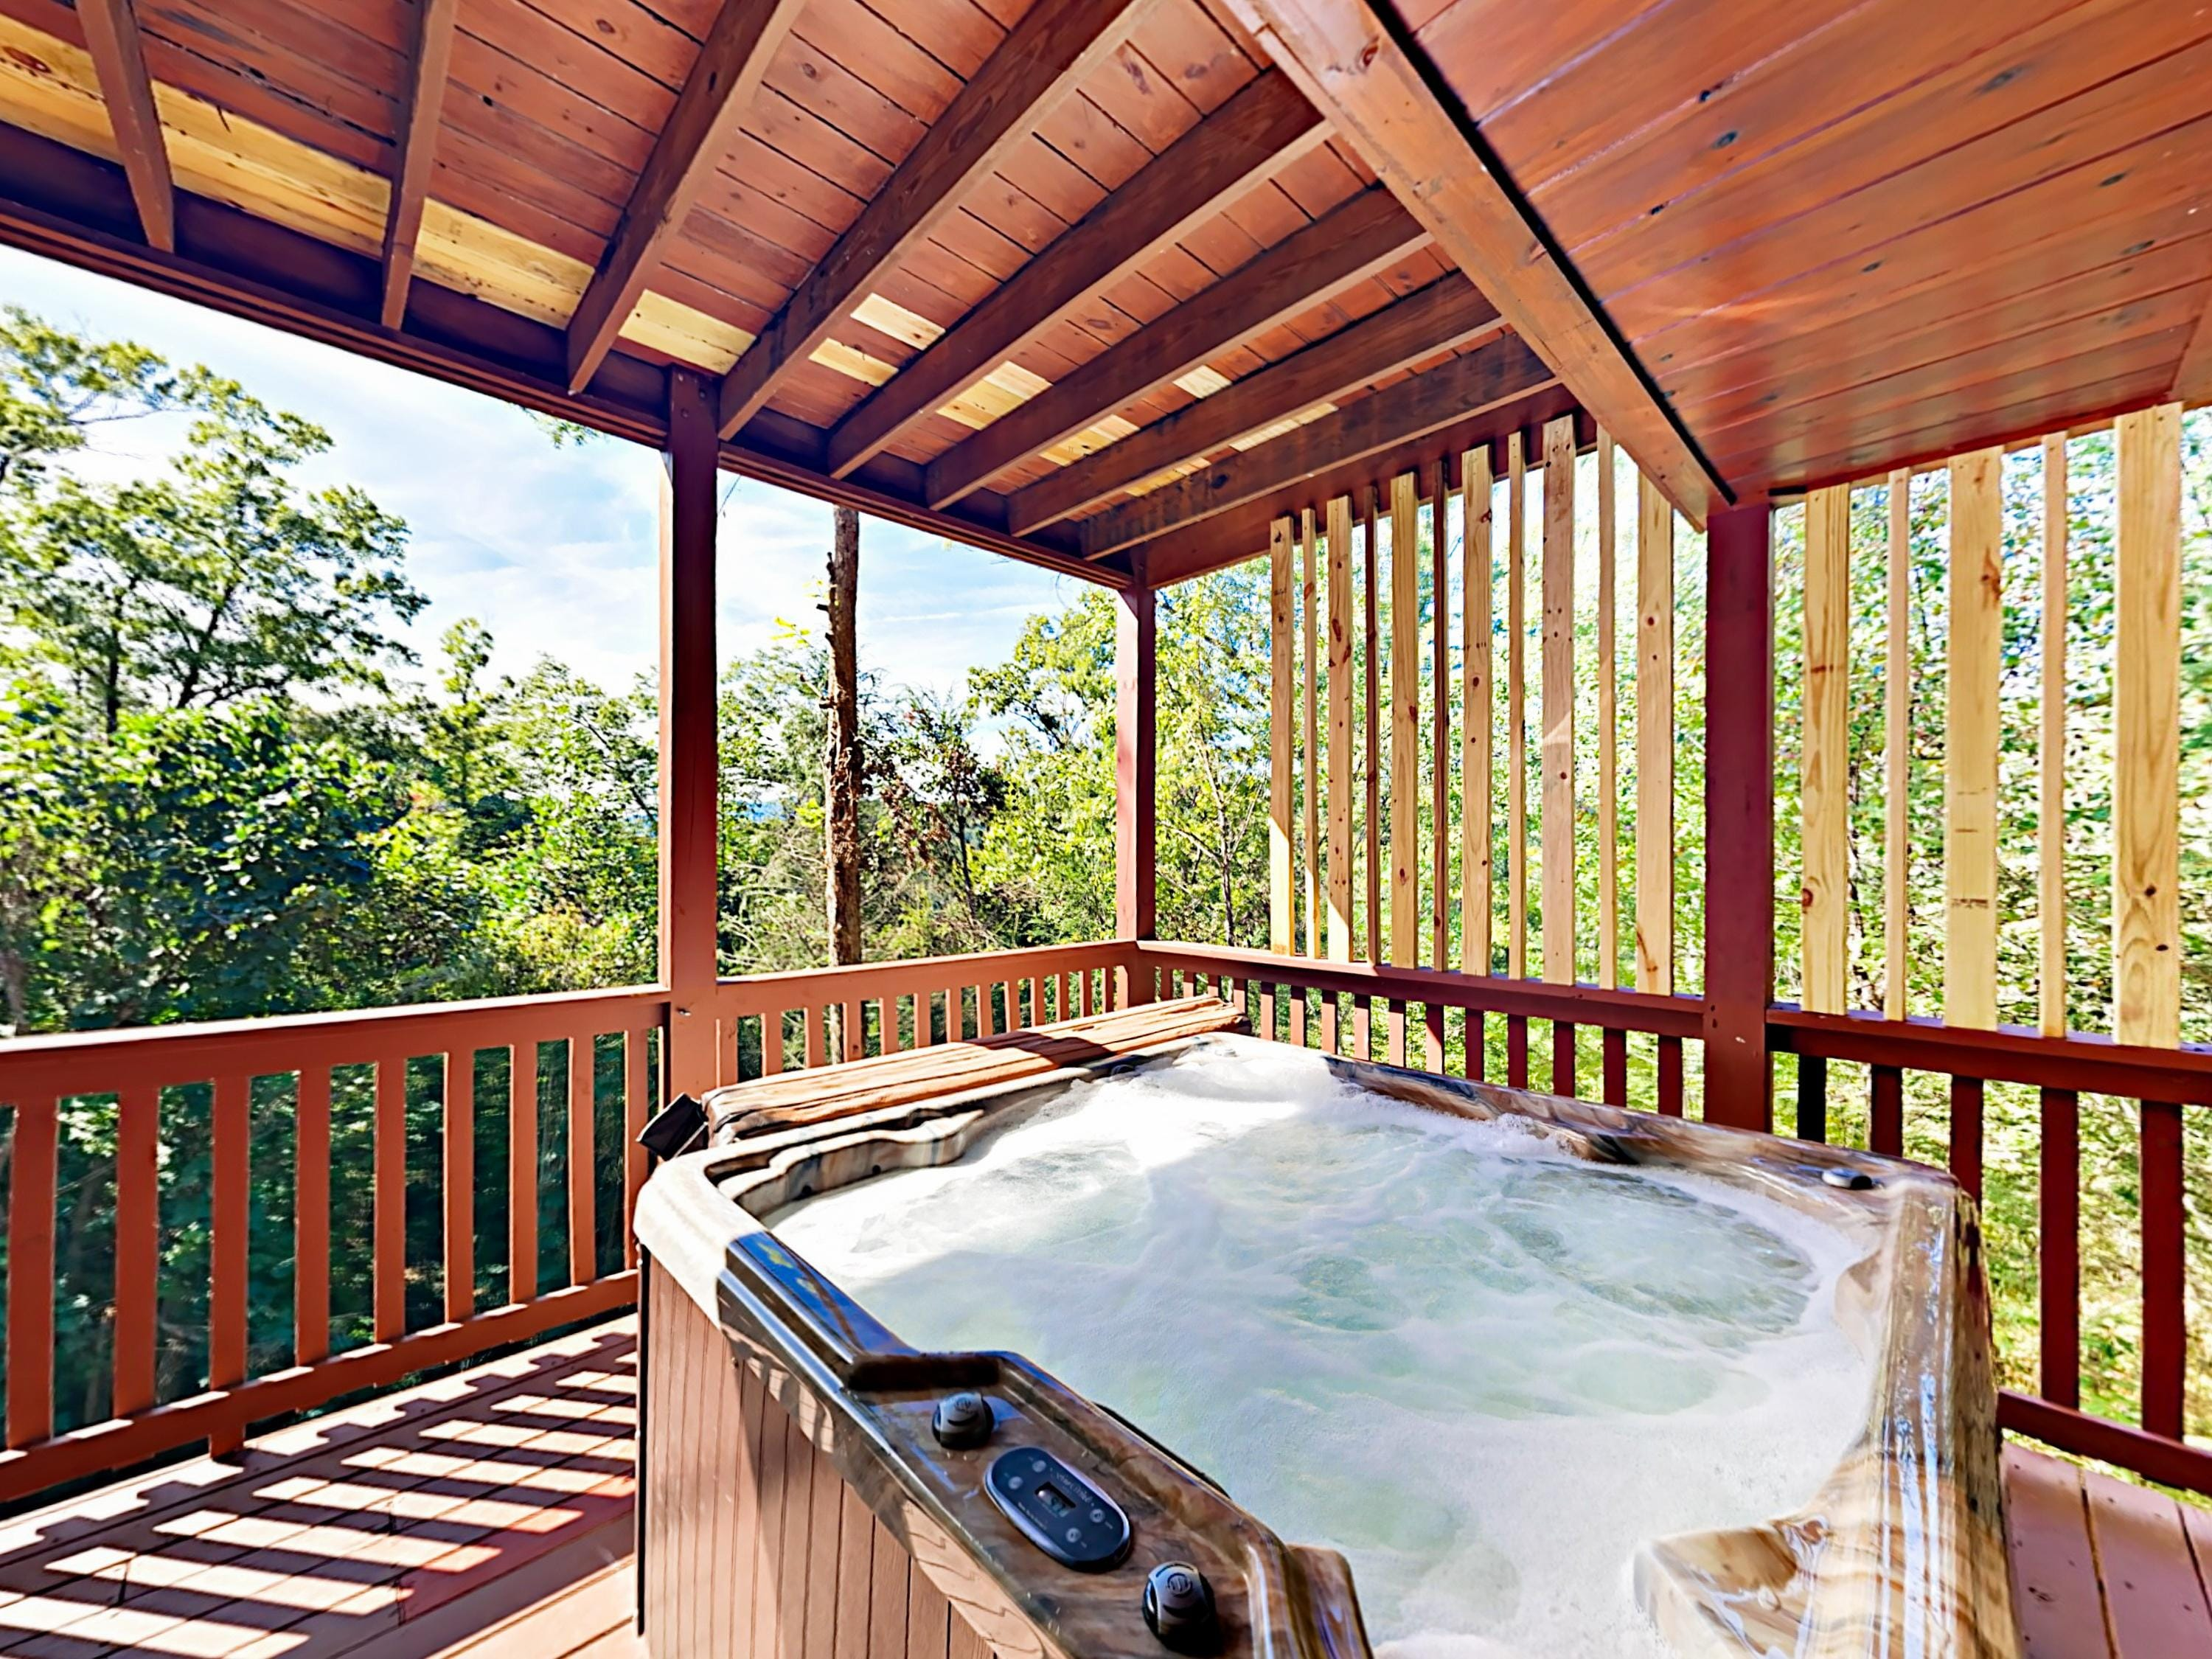 A bubbling hot tub awaits on the covered deck.